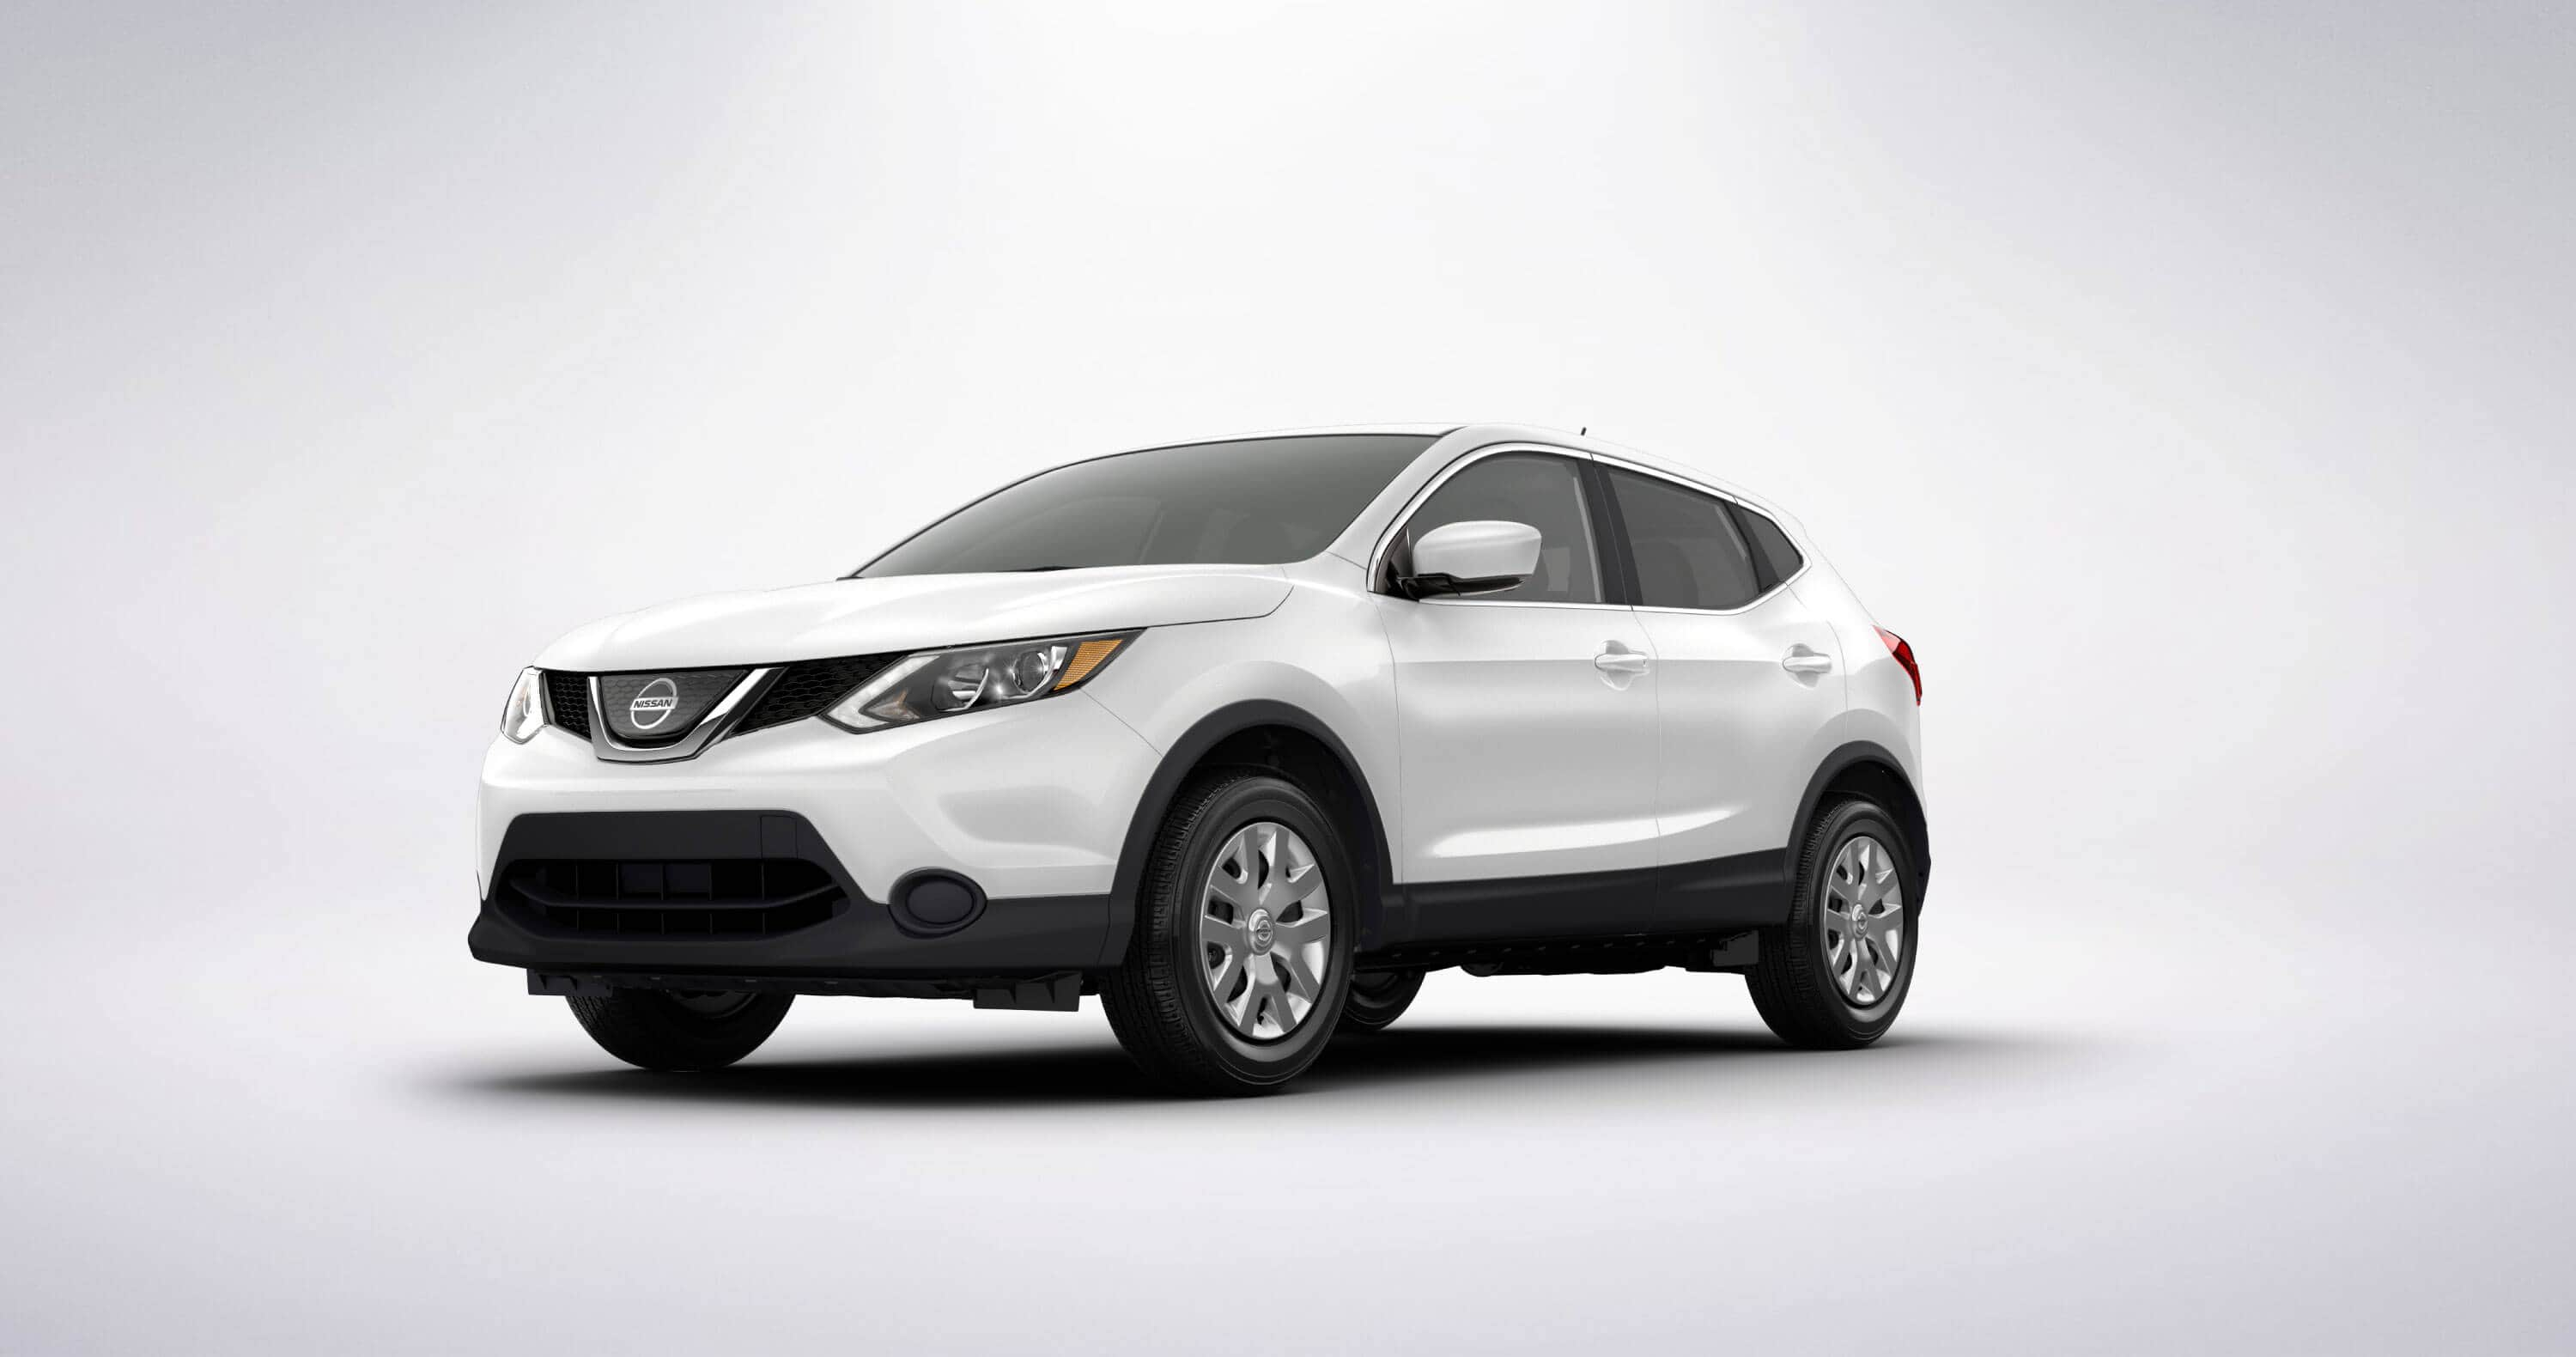 Nissan rogue clipart clipart free stock 2018.5 Nissan Rogue Sport Colors | Nissan USA clipart free stock